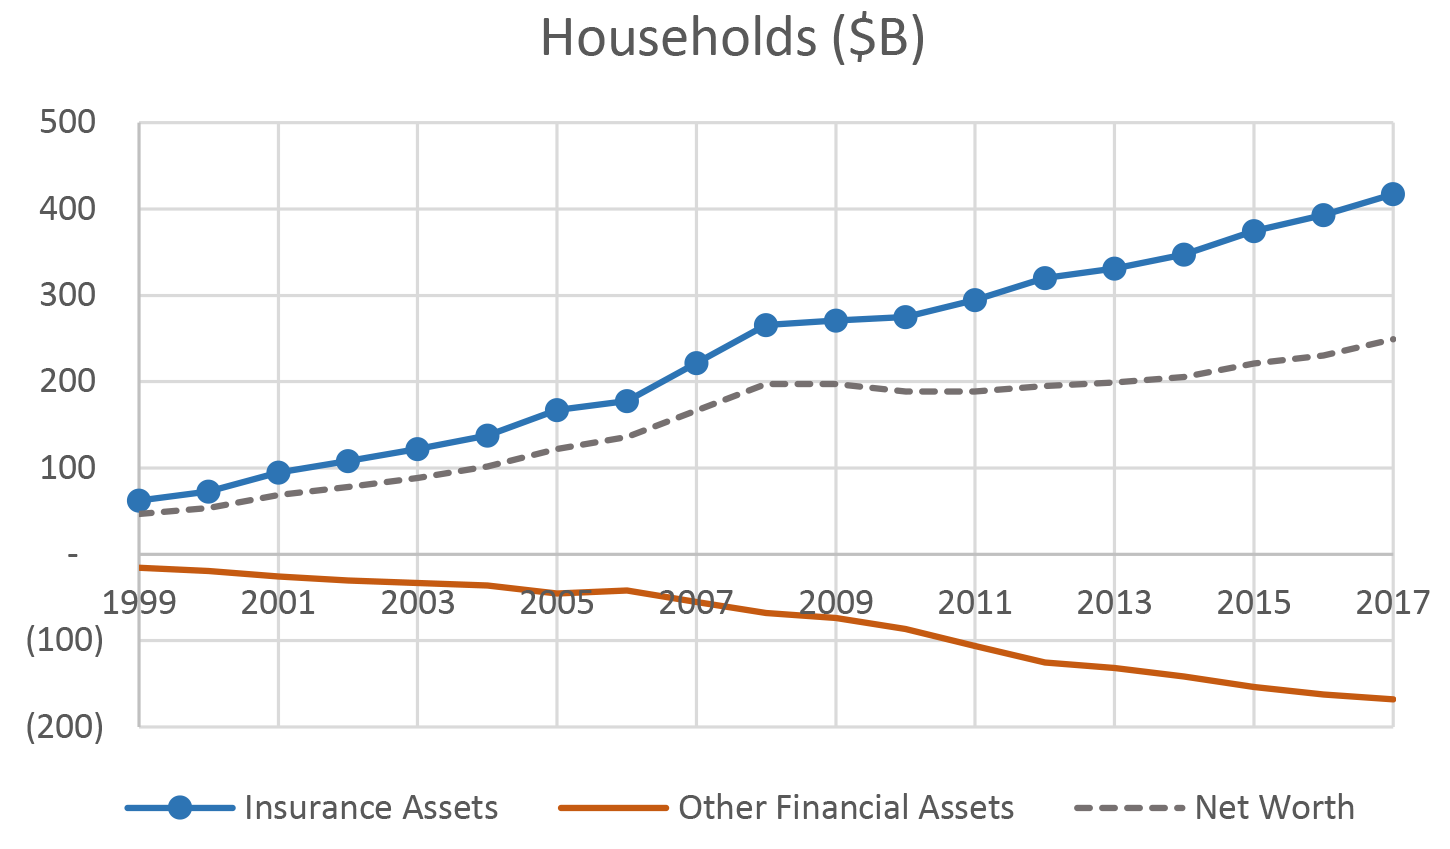 Figure 5. Changes in Household Holdings of Policyholder Obligations and Other Financial Assets due to incorporating non-NAIC Reinsurance into the Financial Accounts. See accessible link for data description.